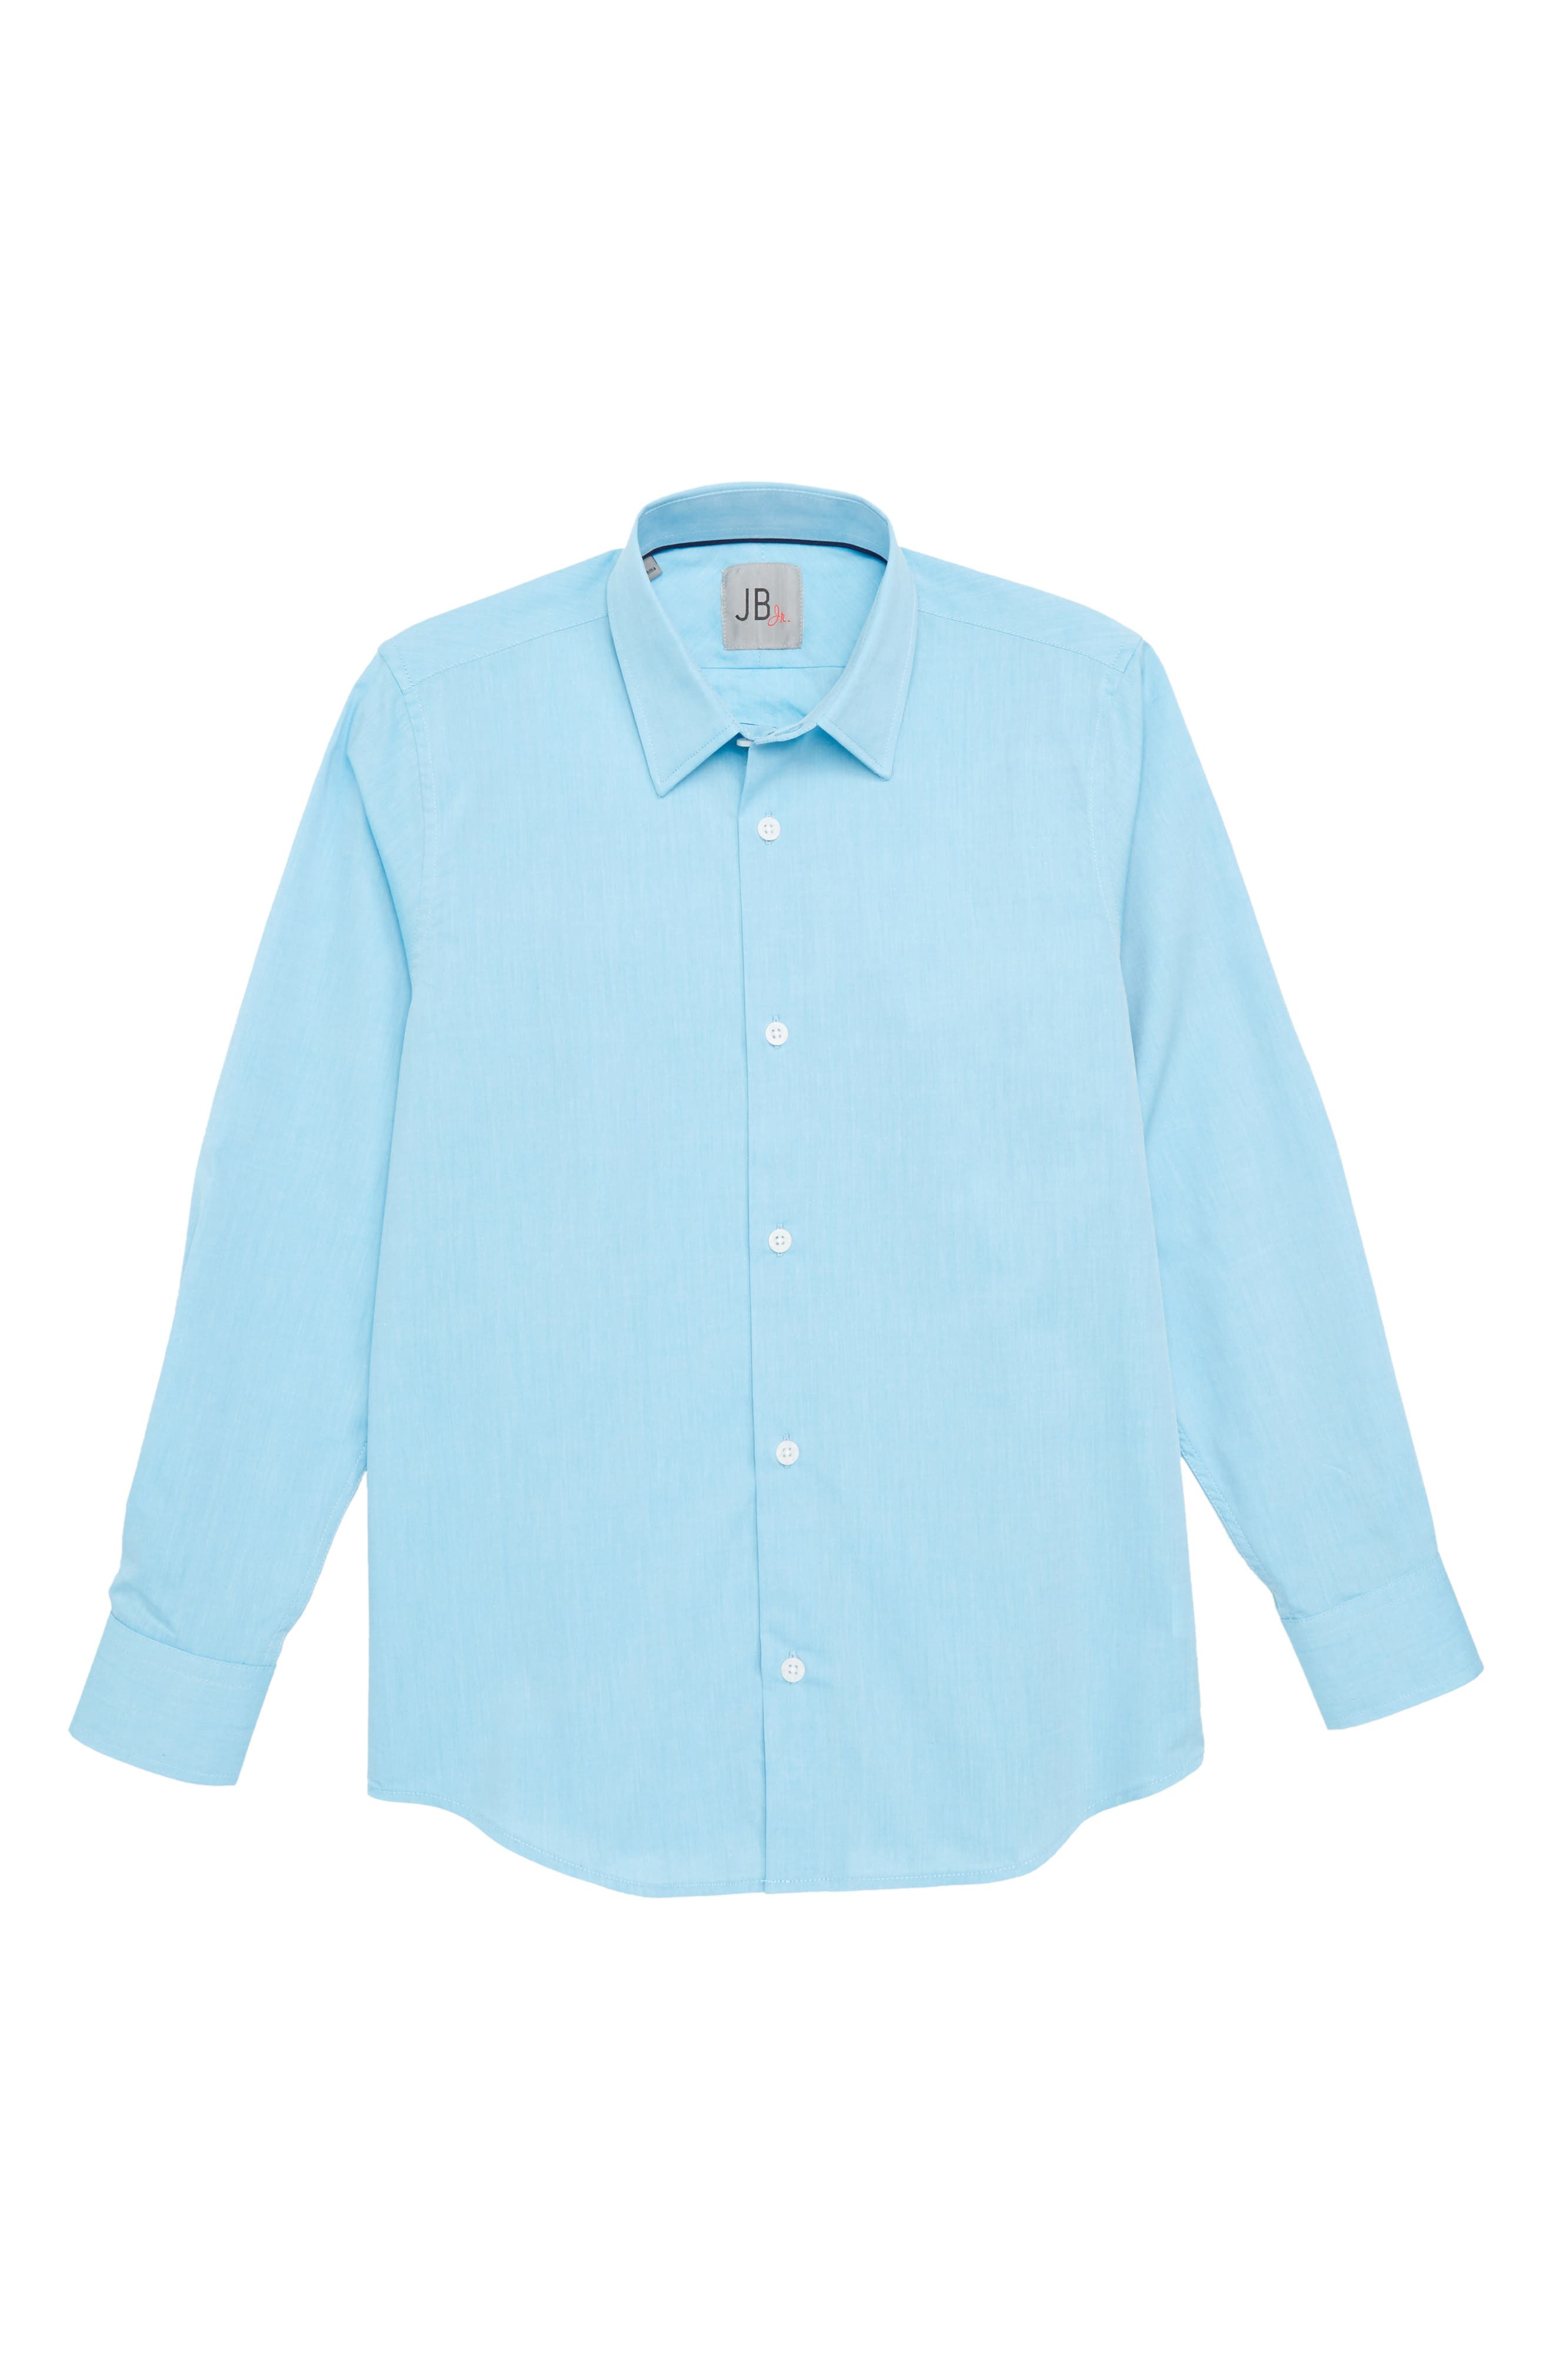 JB Jr Solid Dress Shirt (Big Boys)